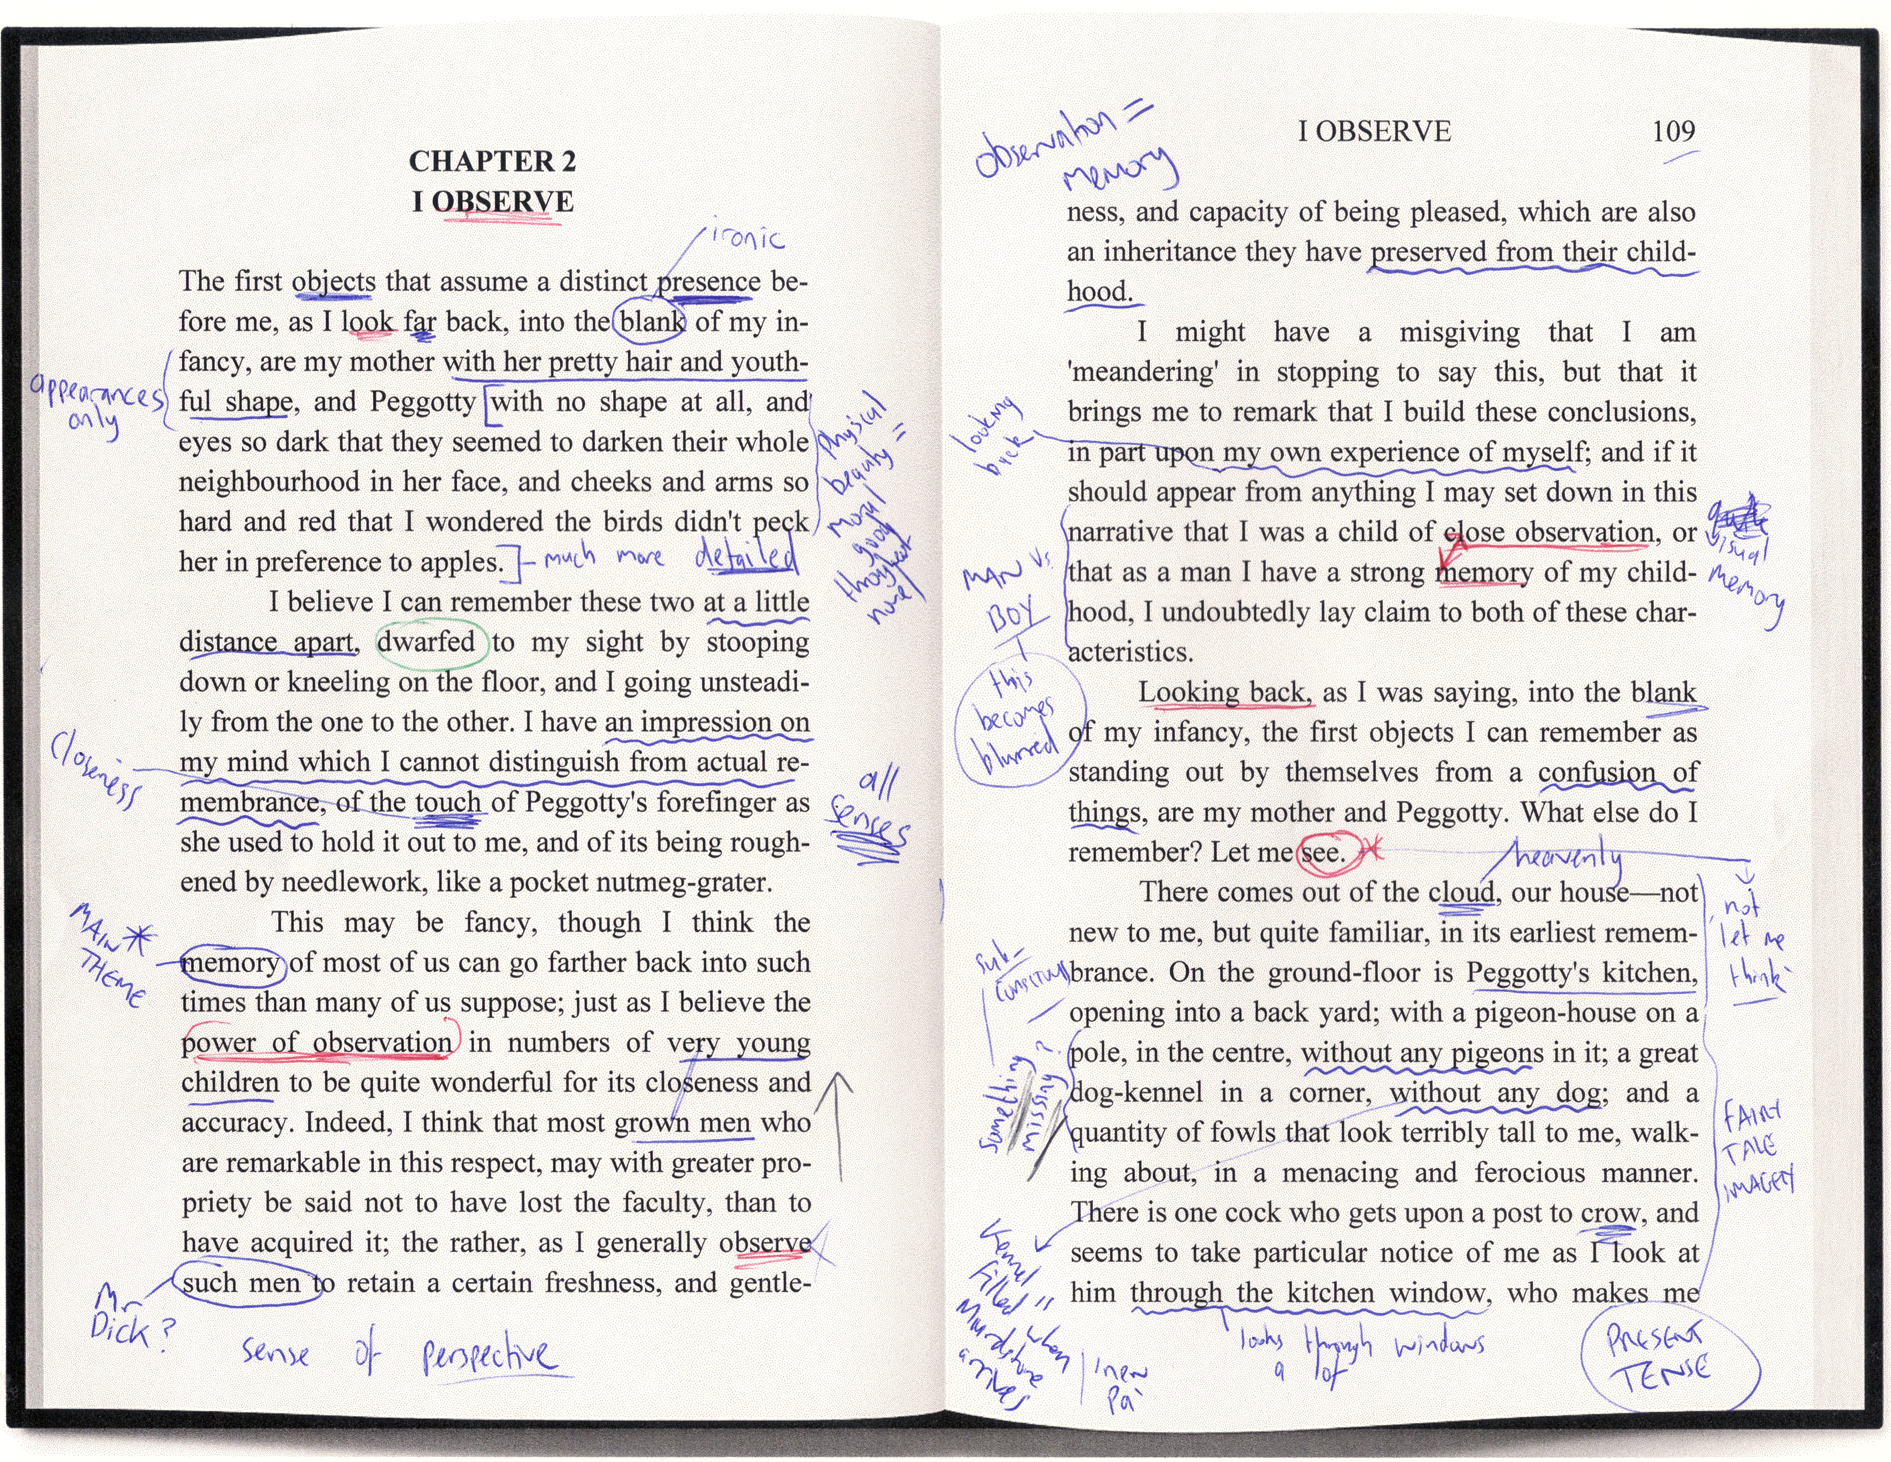 Figure 1: Manual annotation of a text